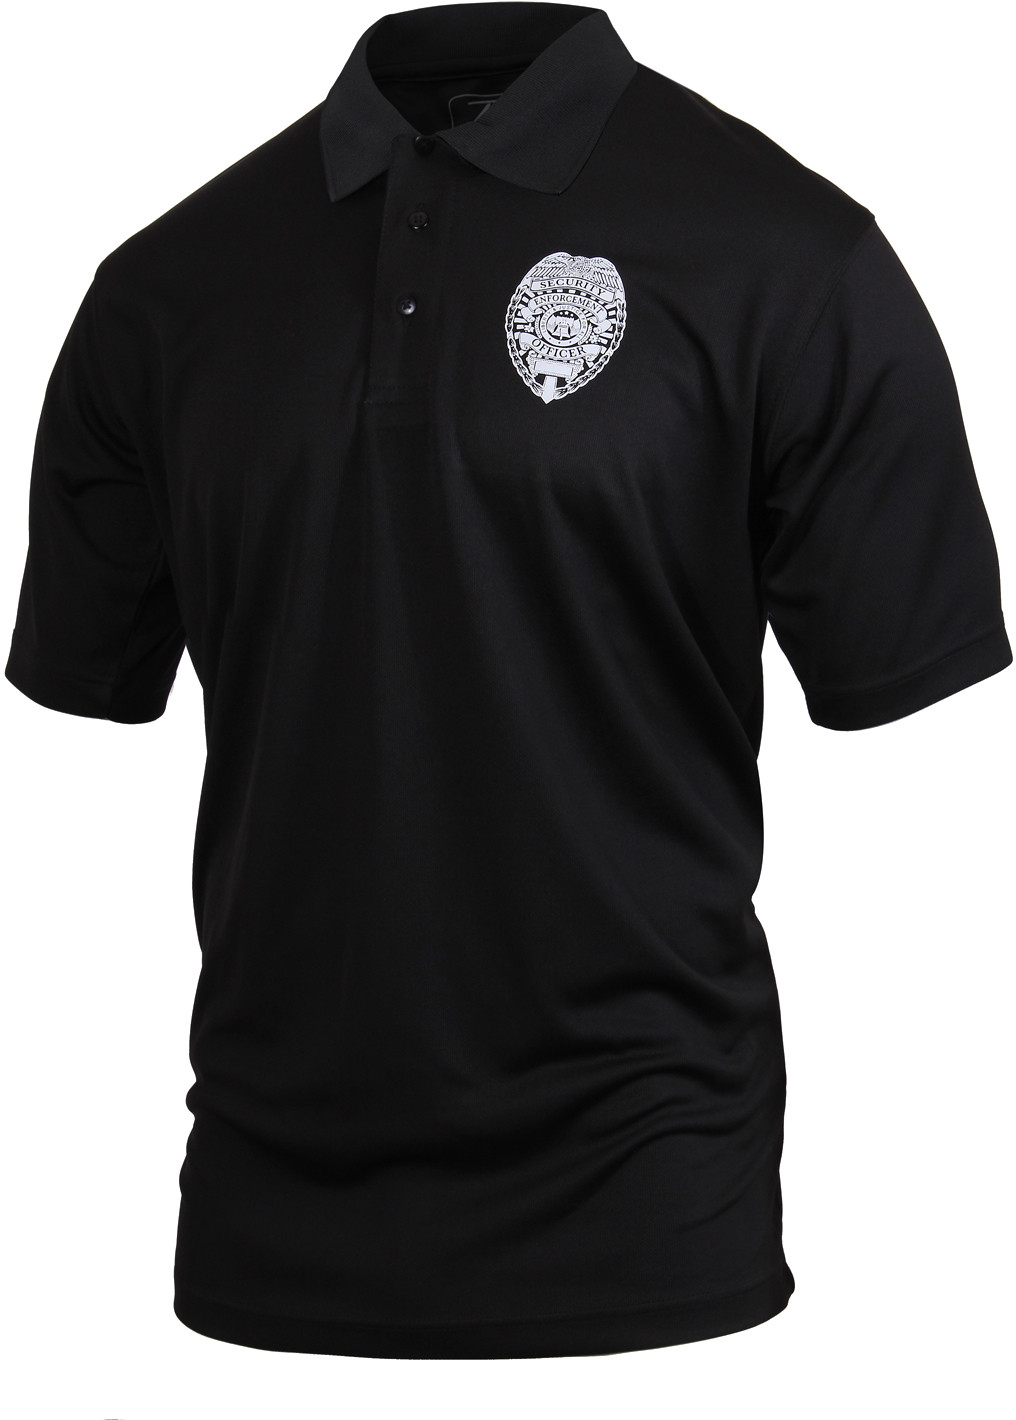 Black moisture wicking security enforcement officer double for Black golf polo shirt